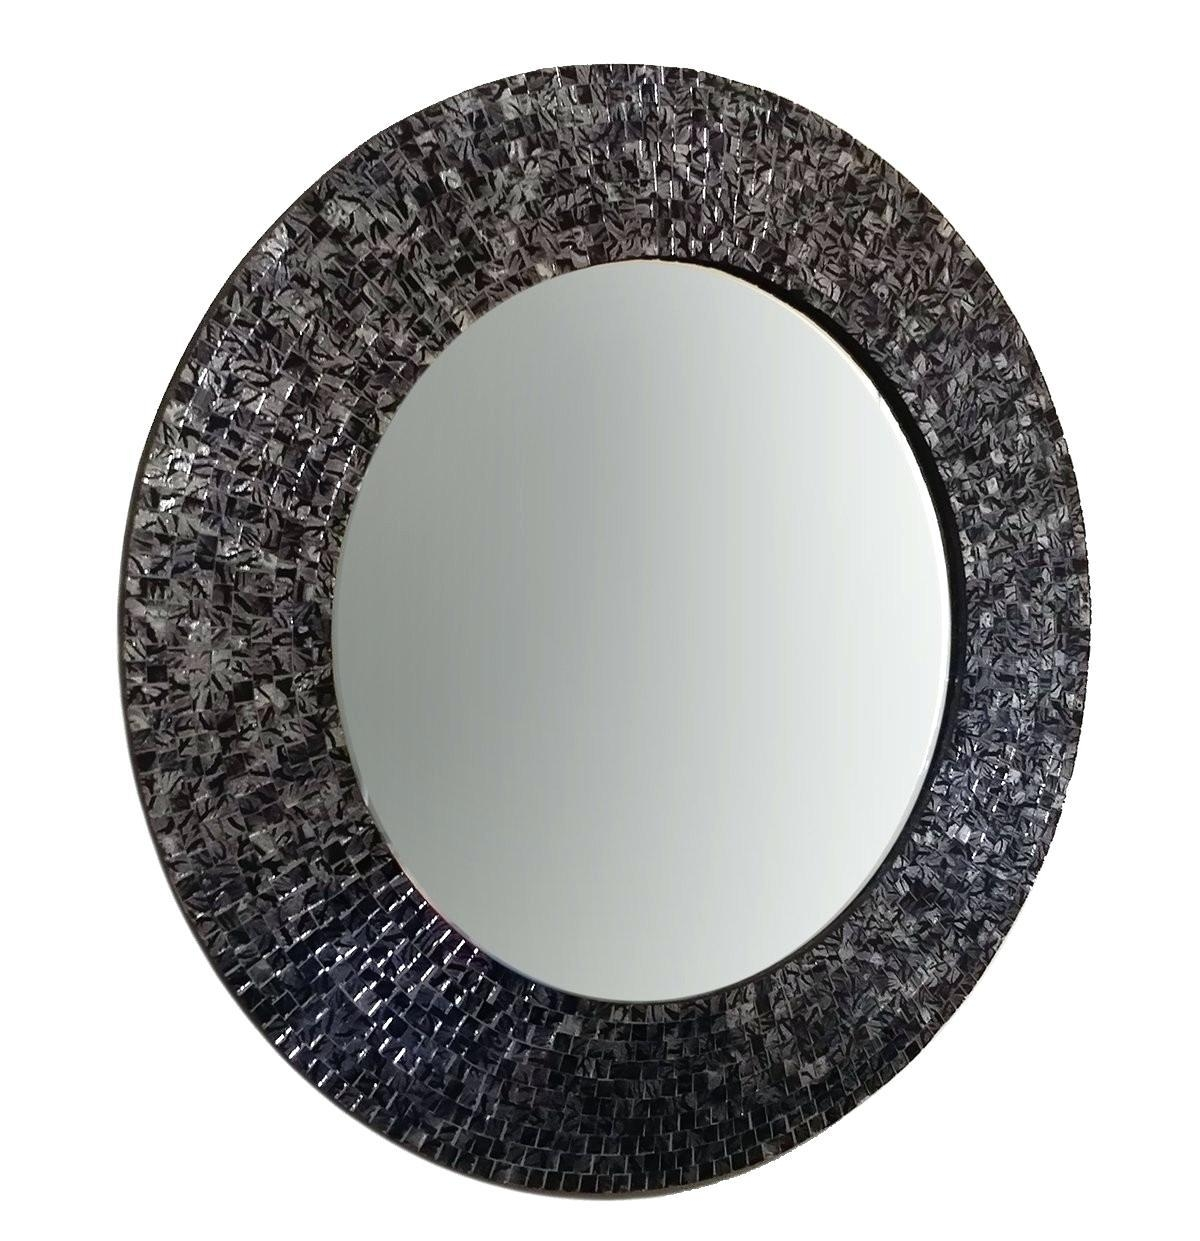 Mosaic Mirror Wall Tiles Large Round – Shopwiz For Round Mosaic Mirrors (View 19 of 20)